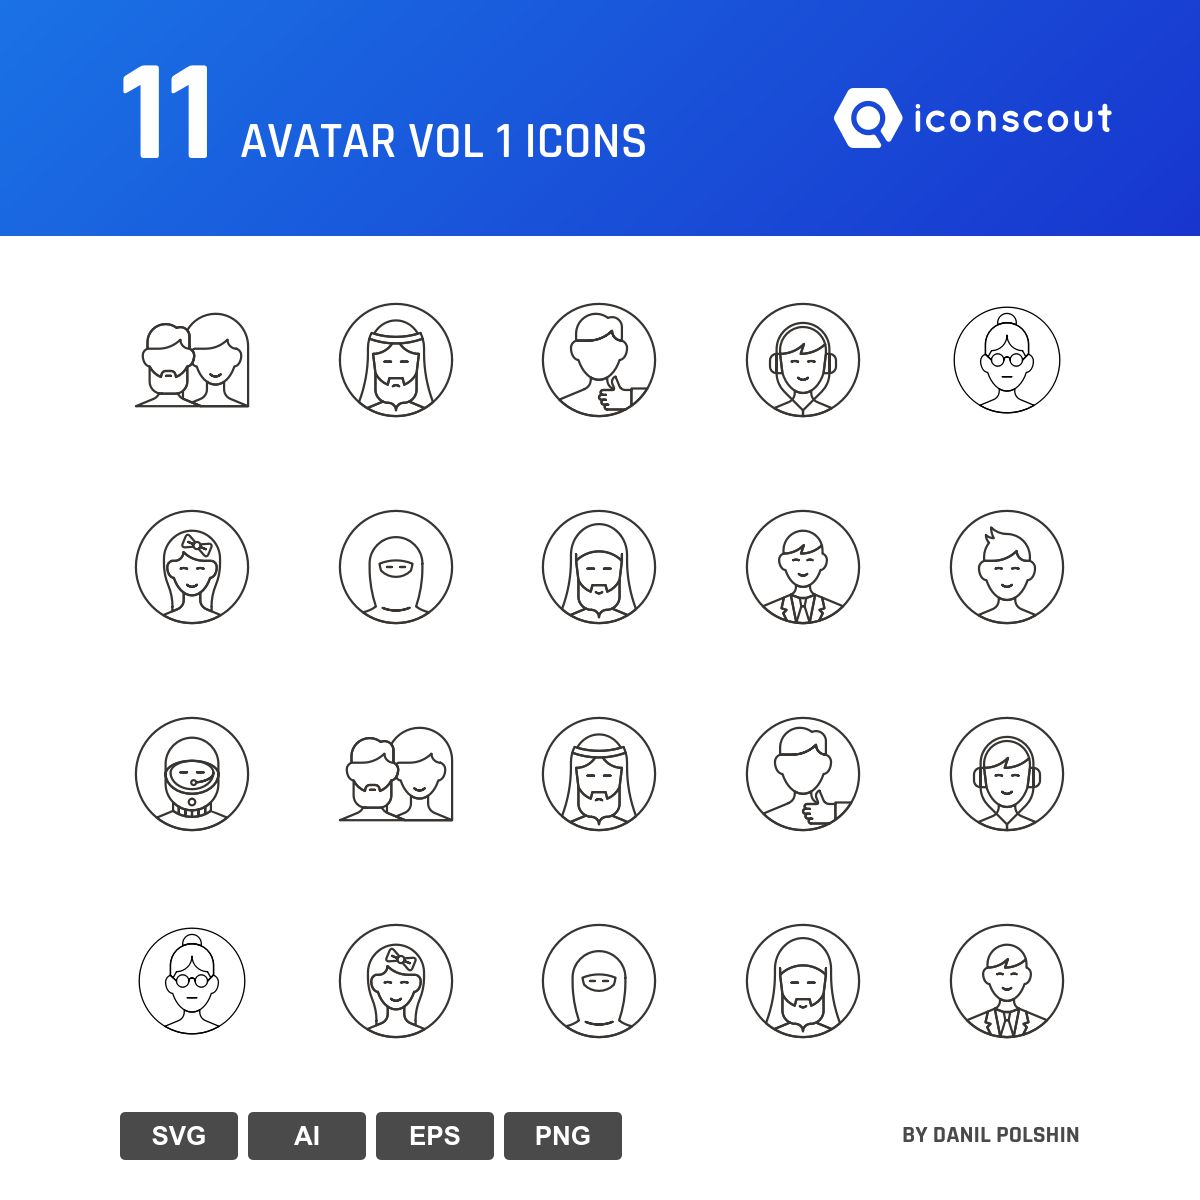 Avatar Vol 1 icons by Danil Polshin